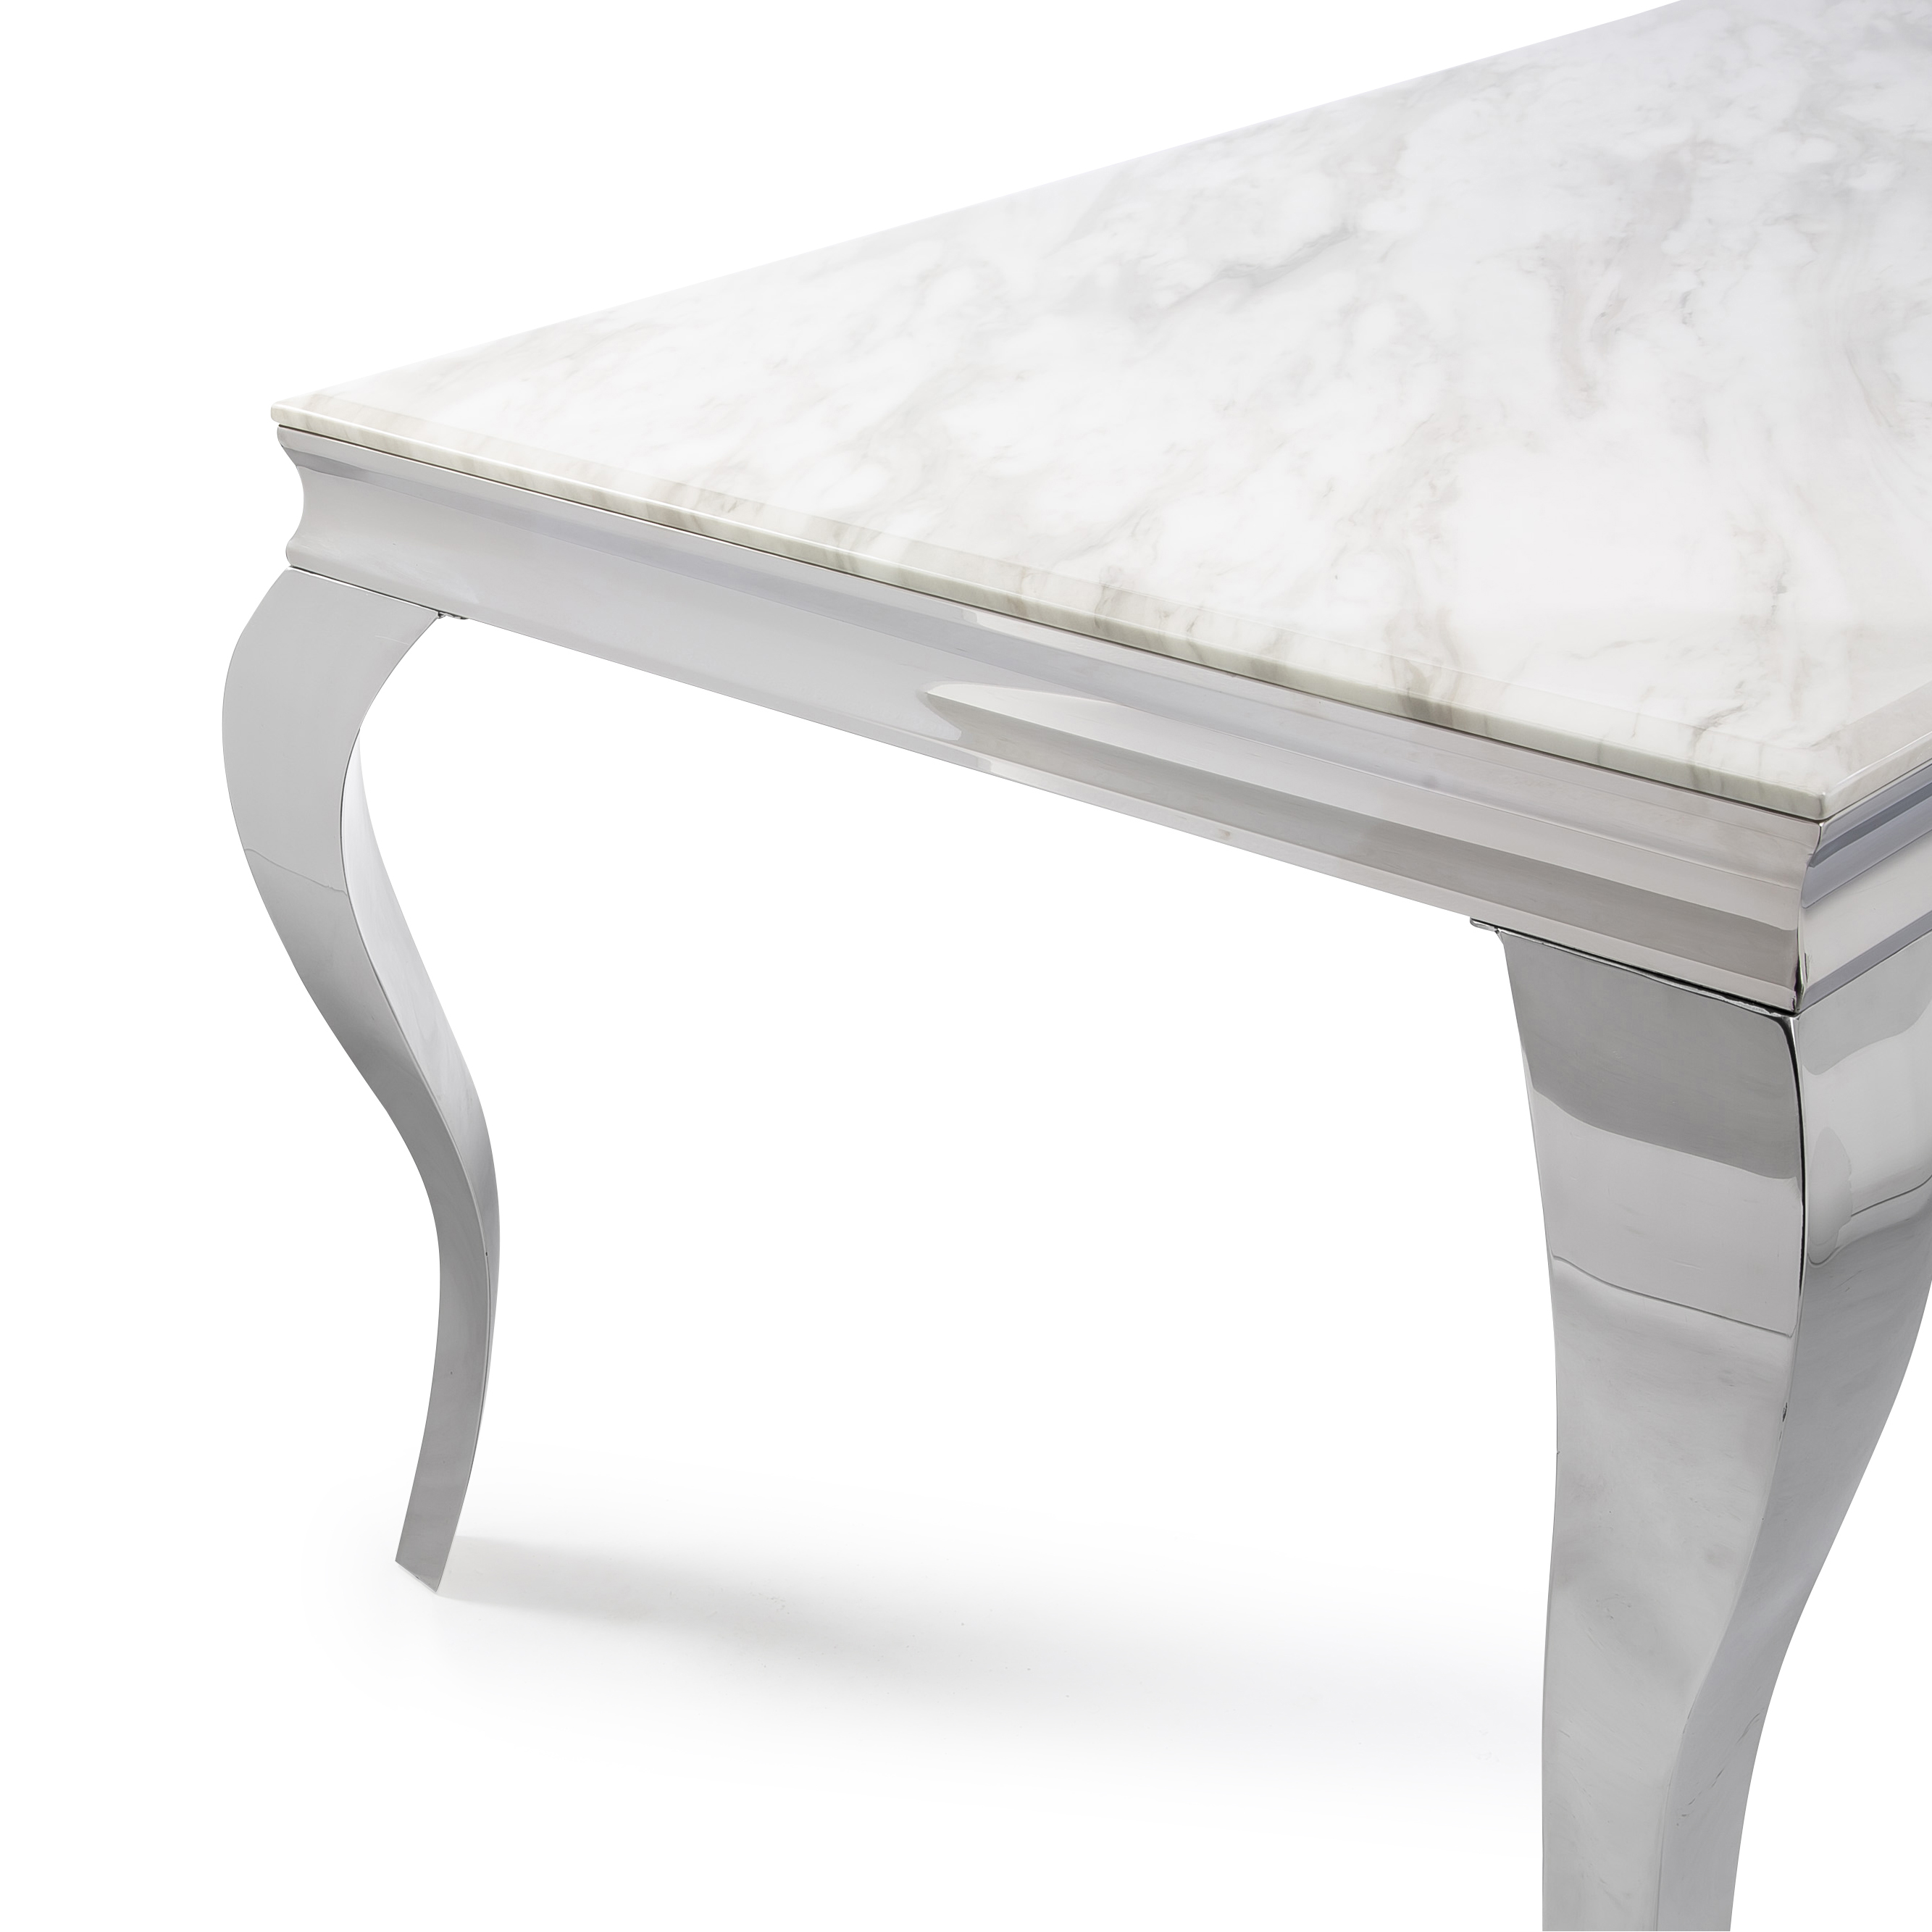 1.8m Louis Polished Steel Dining Table with White Marble Top